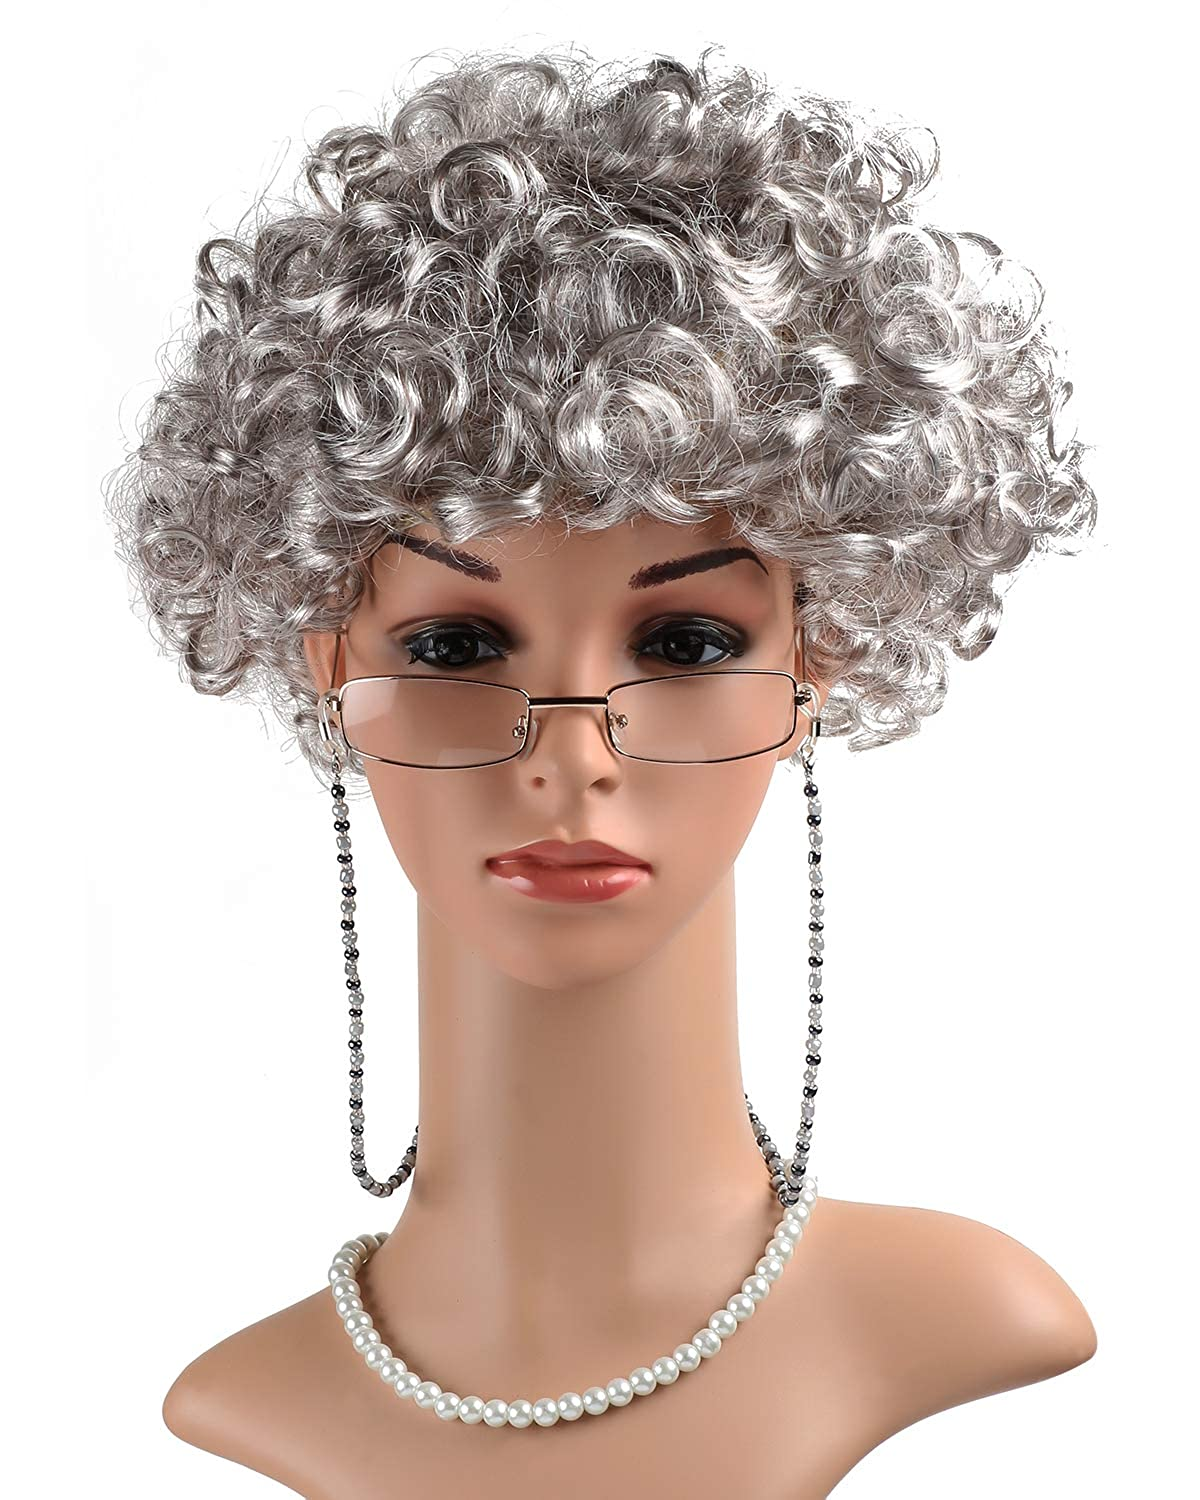 w//Round Glasses /& Pearl Necklace Beads Costume Accessories eforpretty Womens Cosplay Costume Old Lady Wig